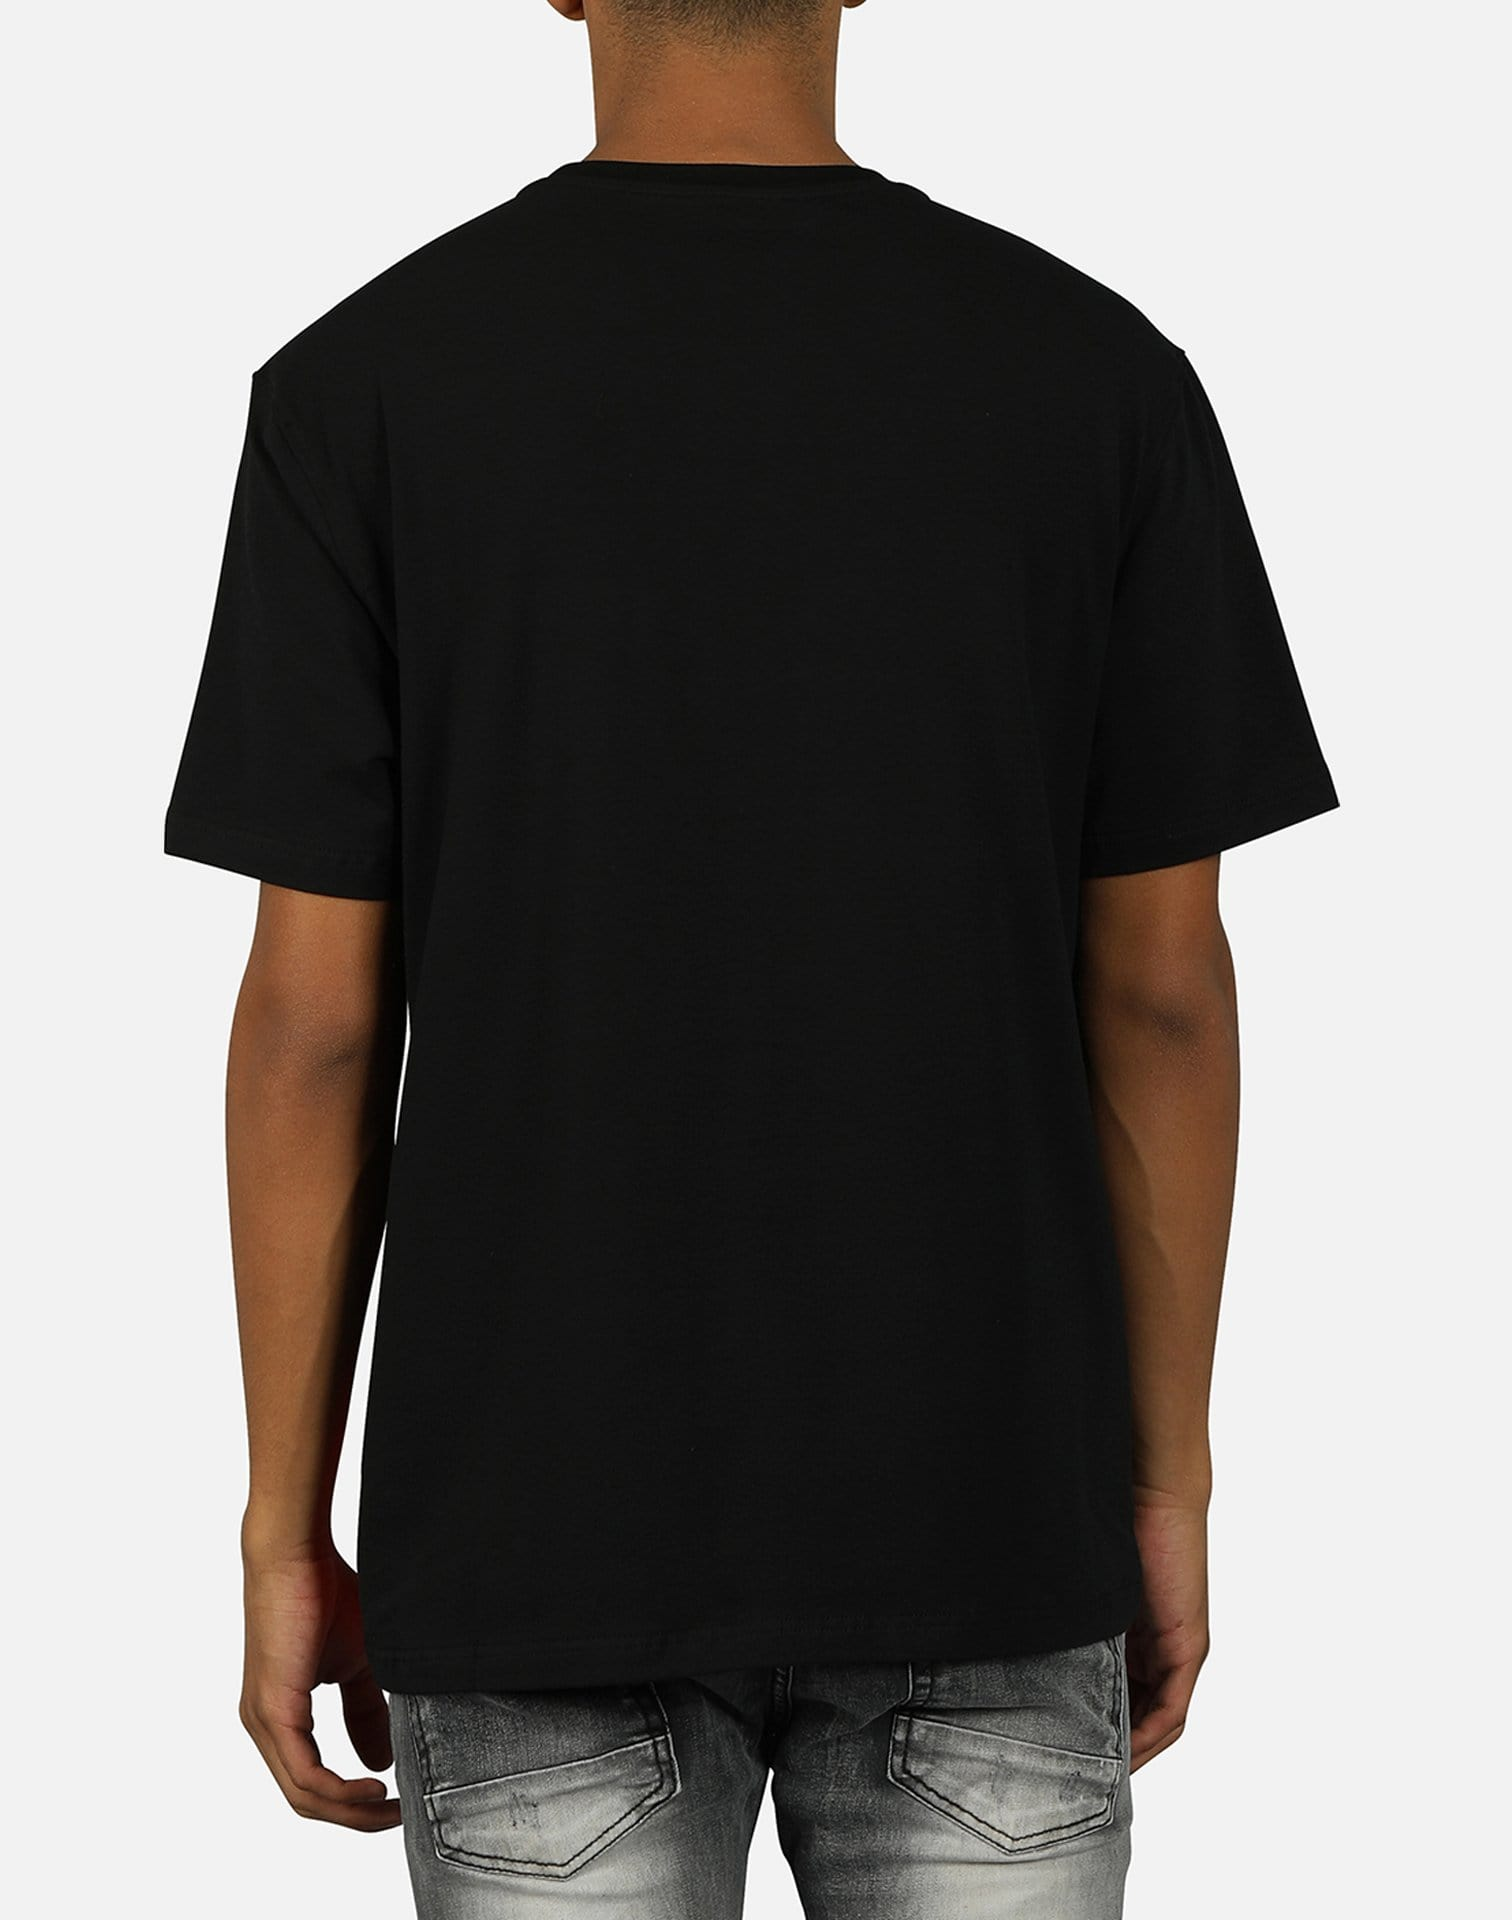 Central Mills Inc. Men's Spying Marvin Tee